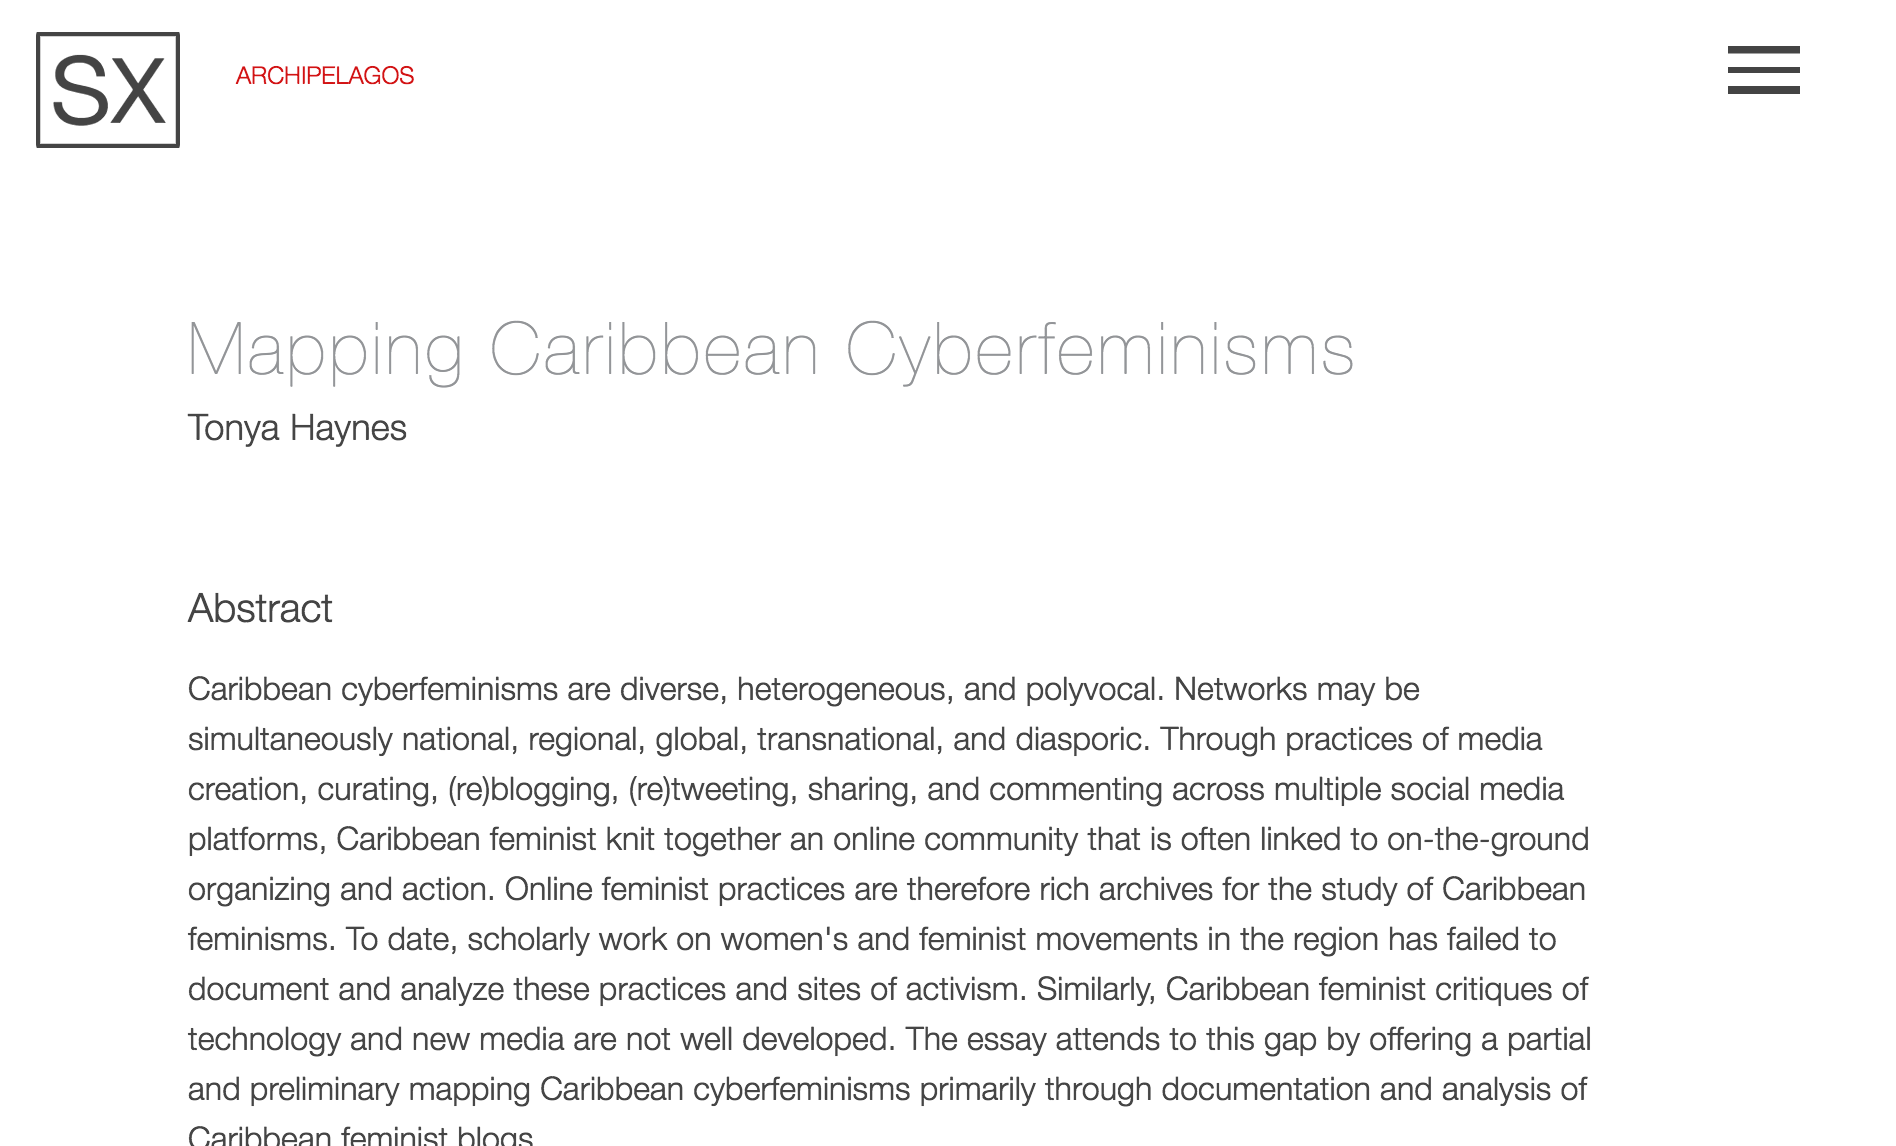 Mapping Caribbean Cyberfeminisms